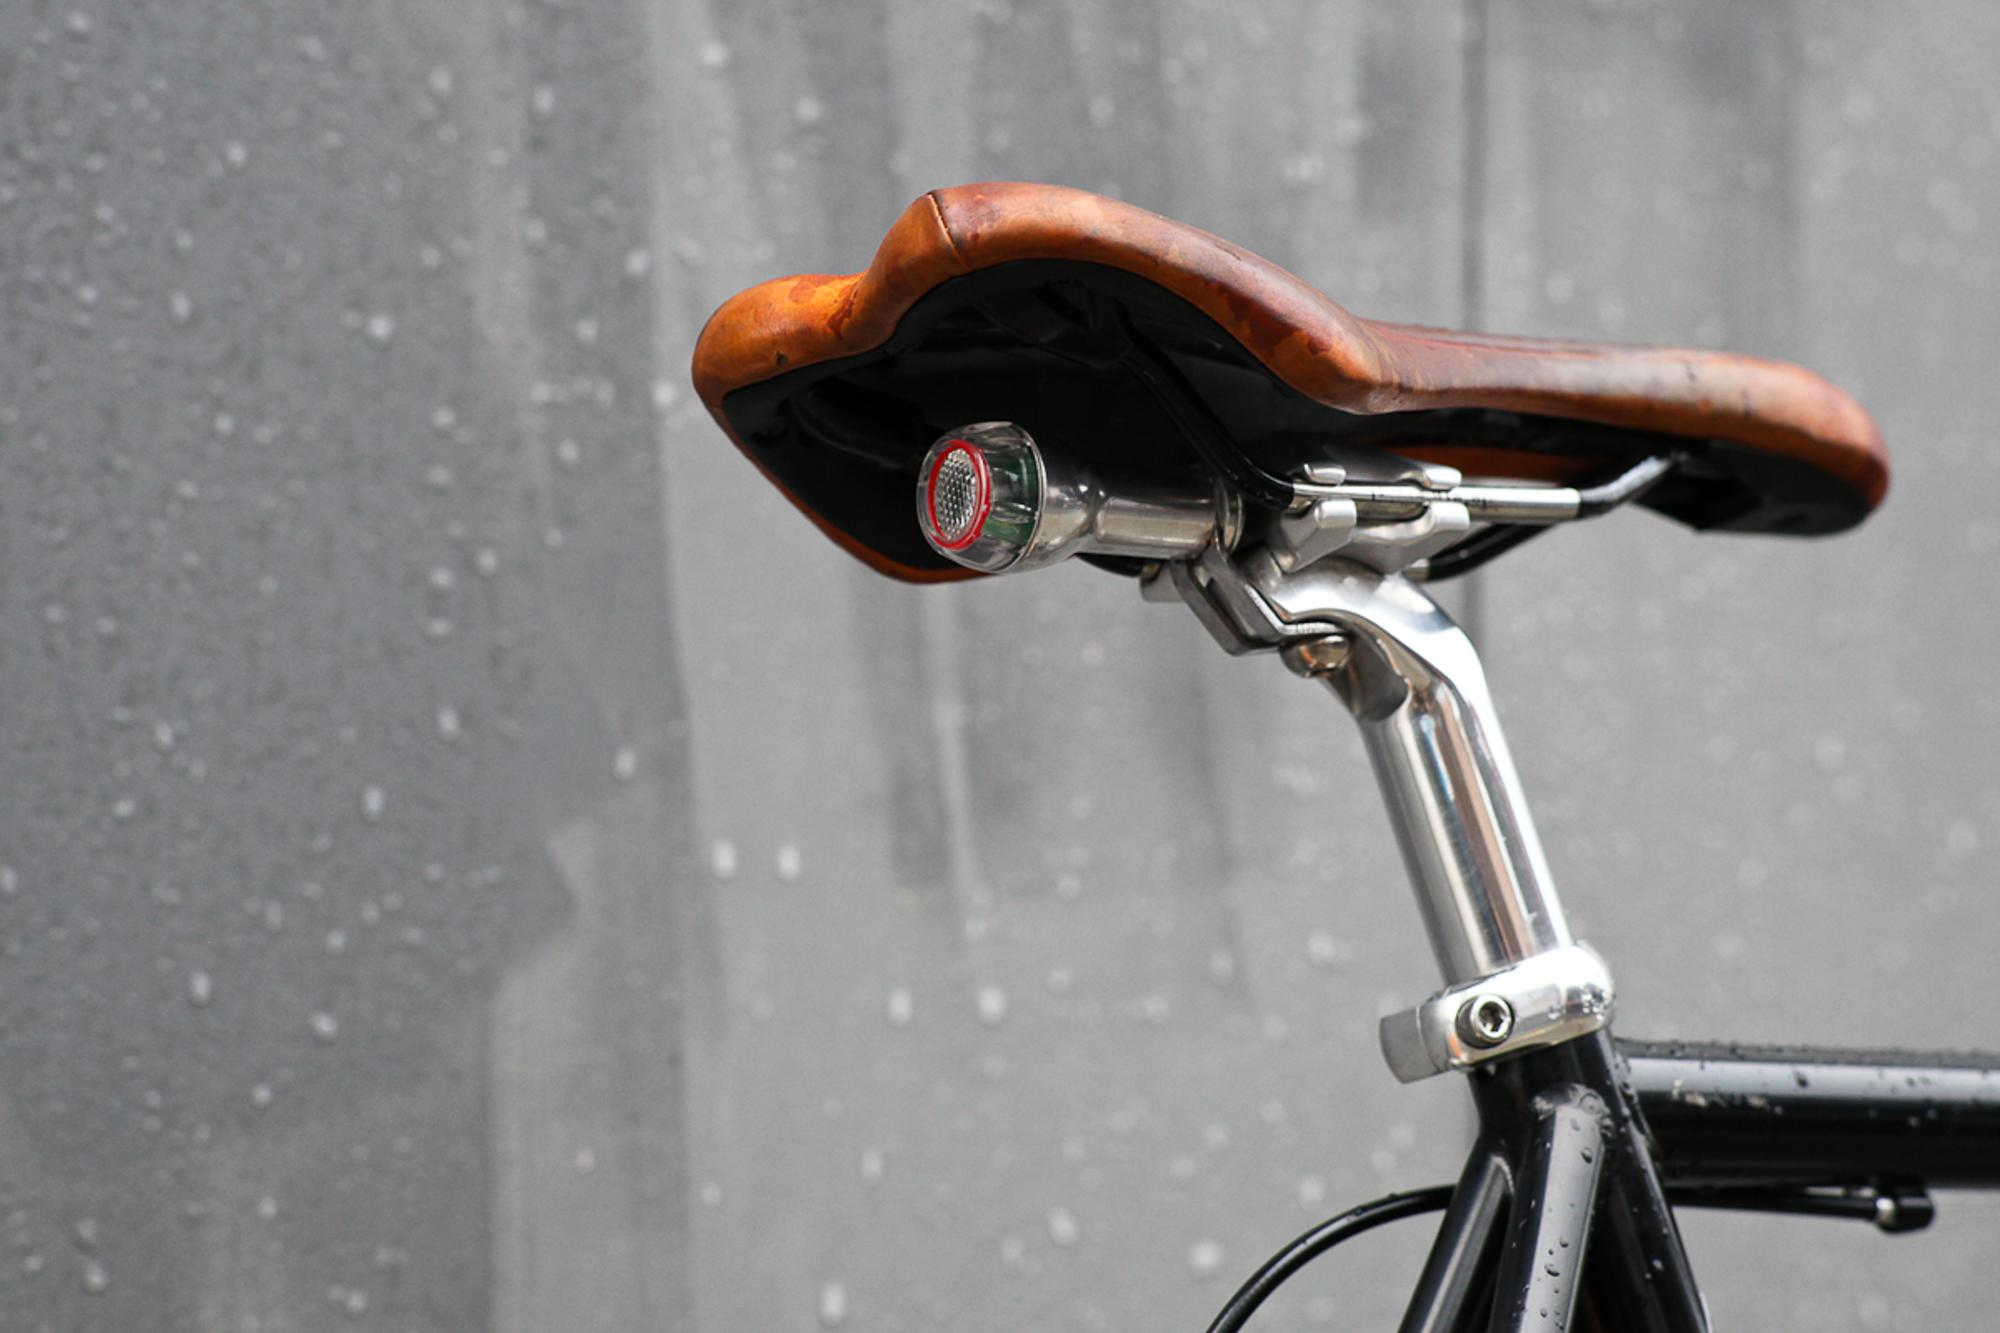 The rear light's casing was stripped of its black anodizing and polished, only then could it be mounted to the bracket, attached to the seat post.